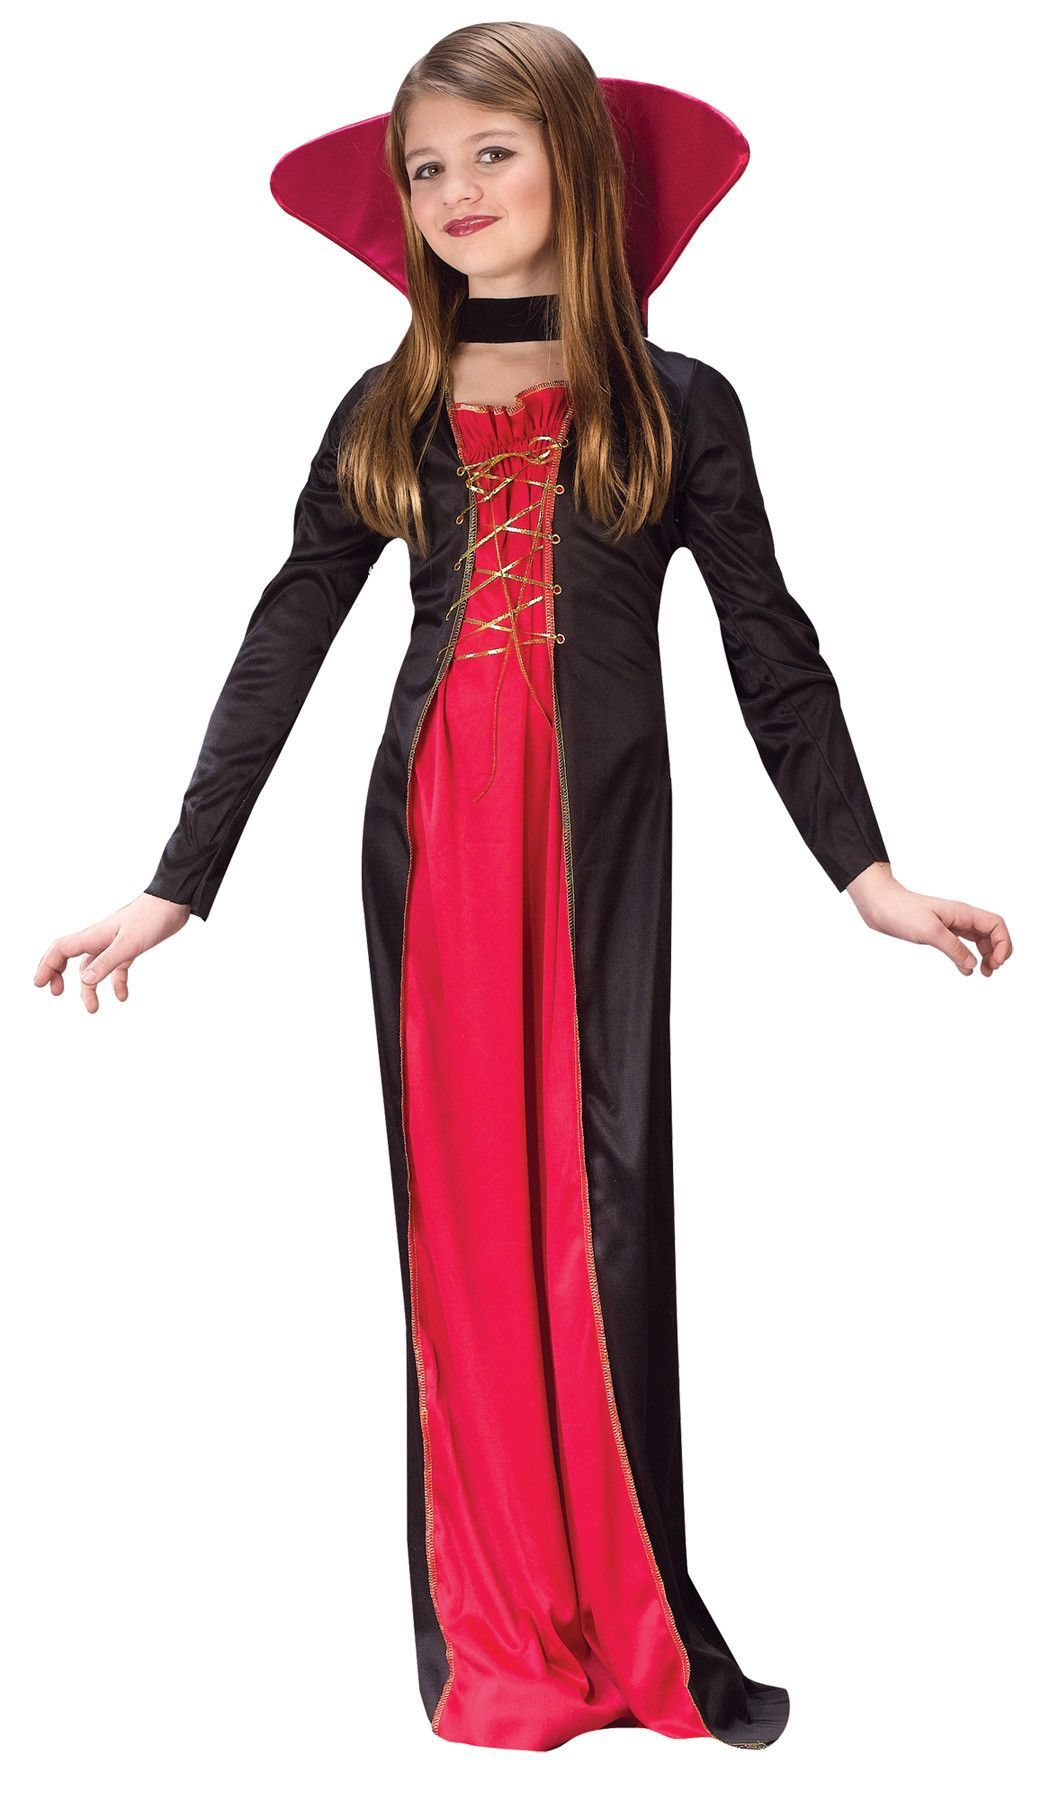 Baby /& Toddler Count Dracula Vampire Halloween Fancy Dress Babygrow Outfit